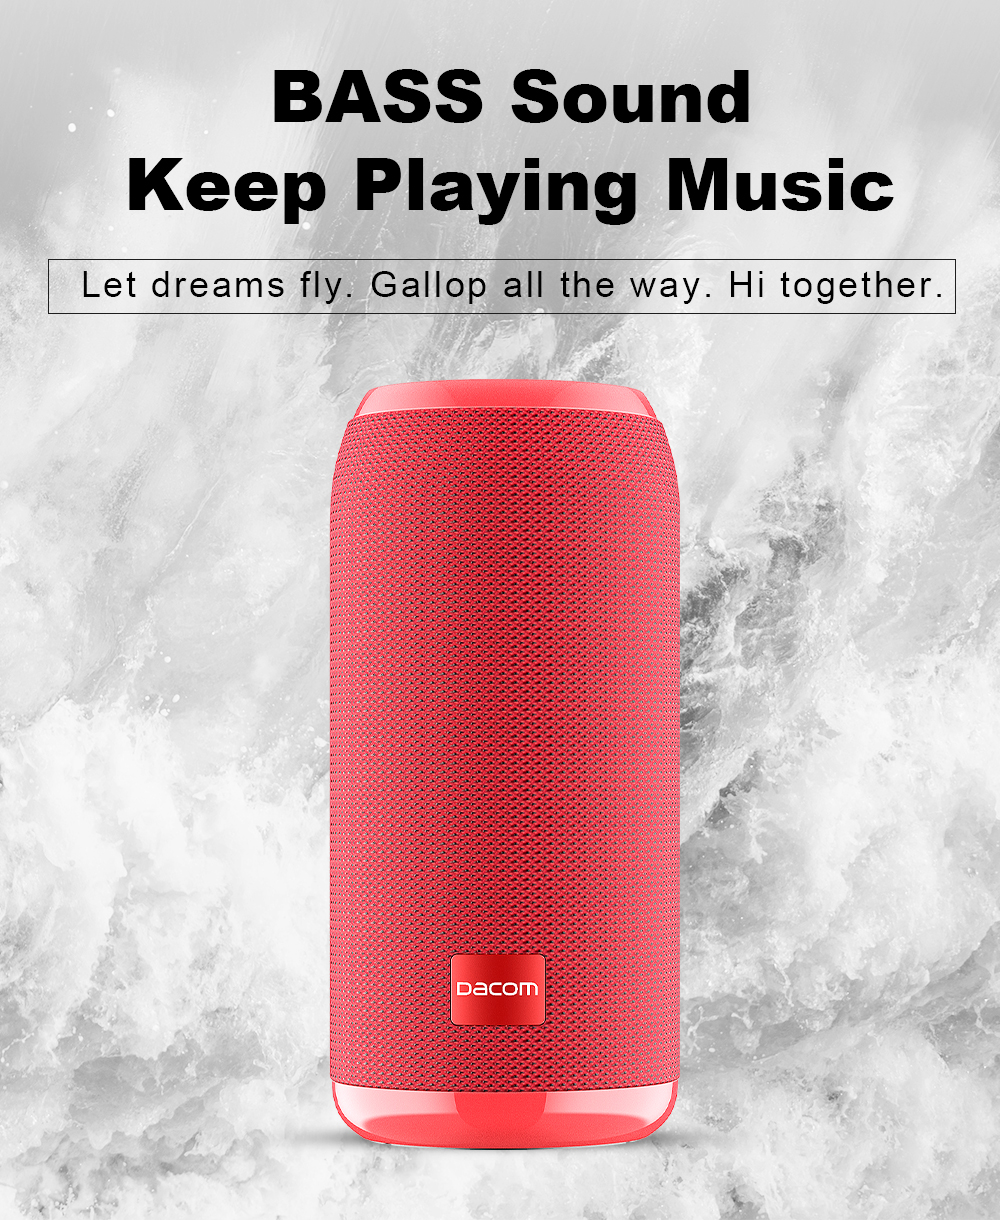 DACOM Q53 Mini Portable Bluetooth Speaker With Bass 3D Stereo Music Sub Woofer And TF Card Support 3